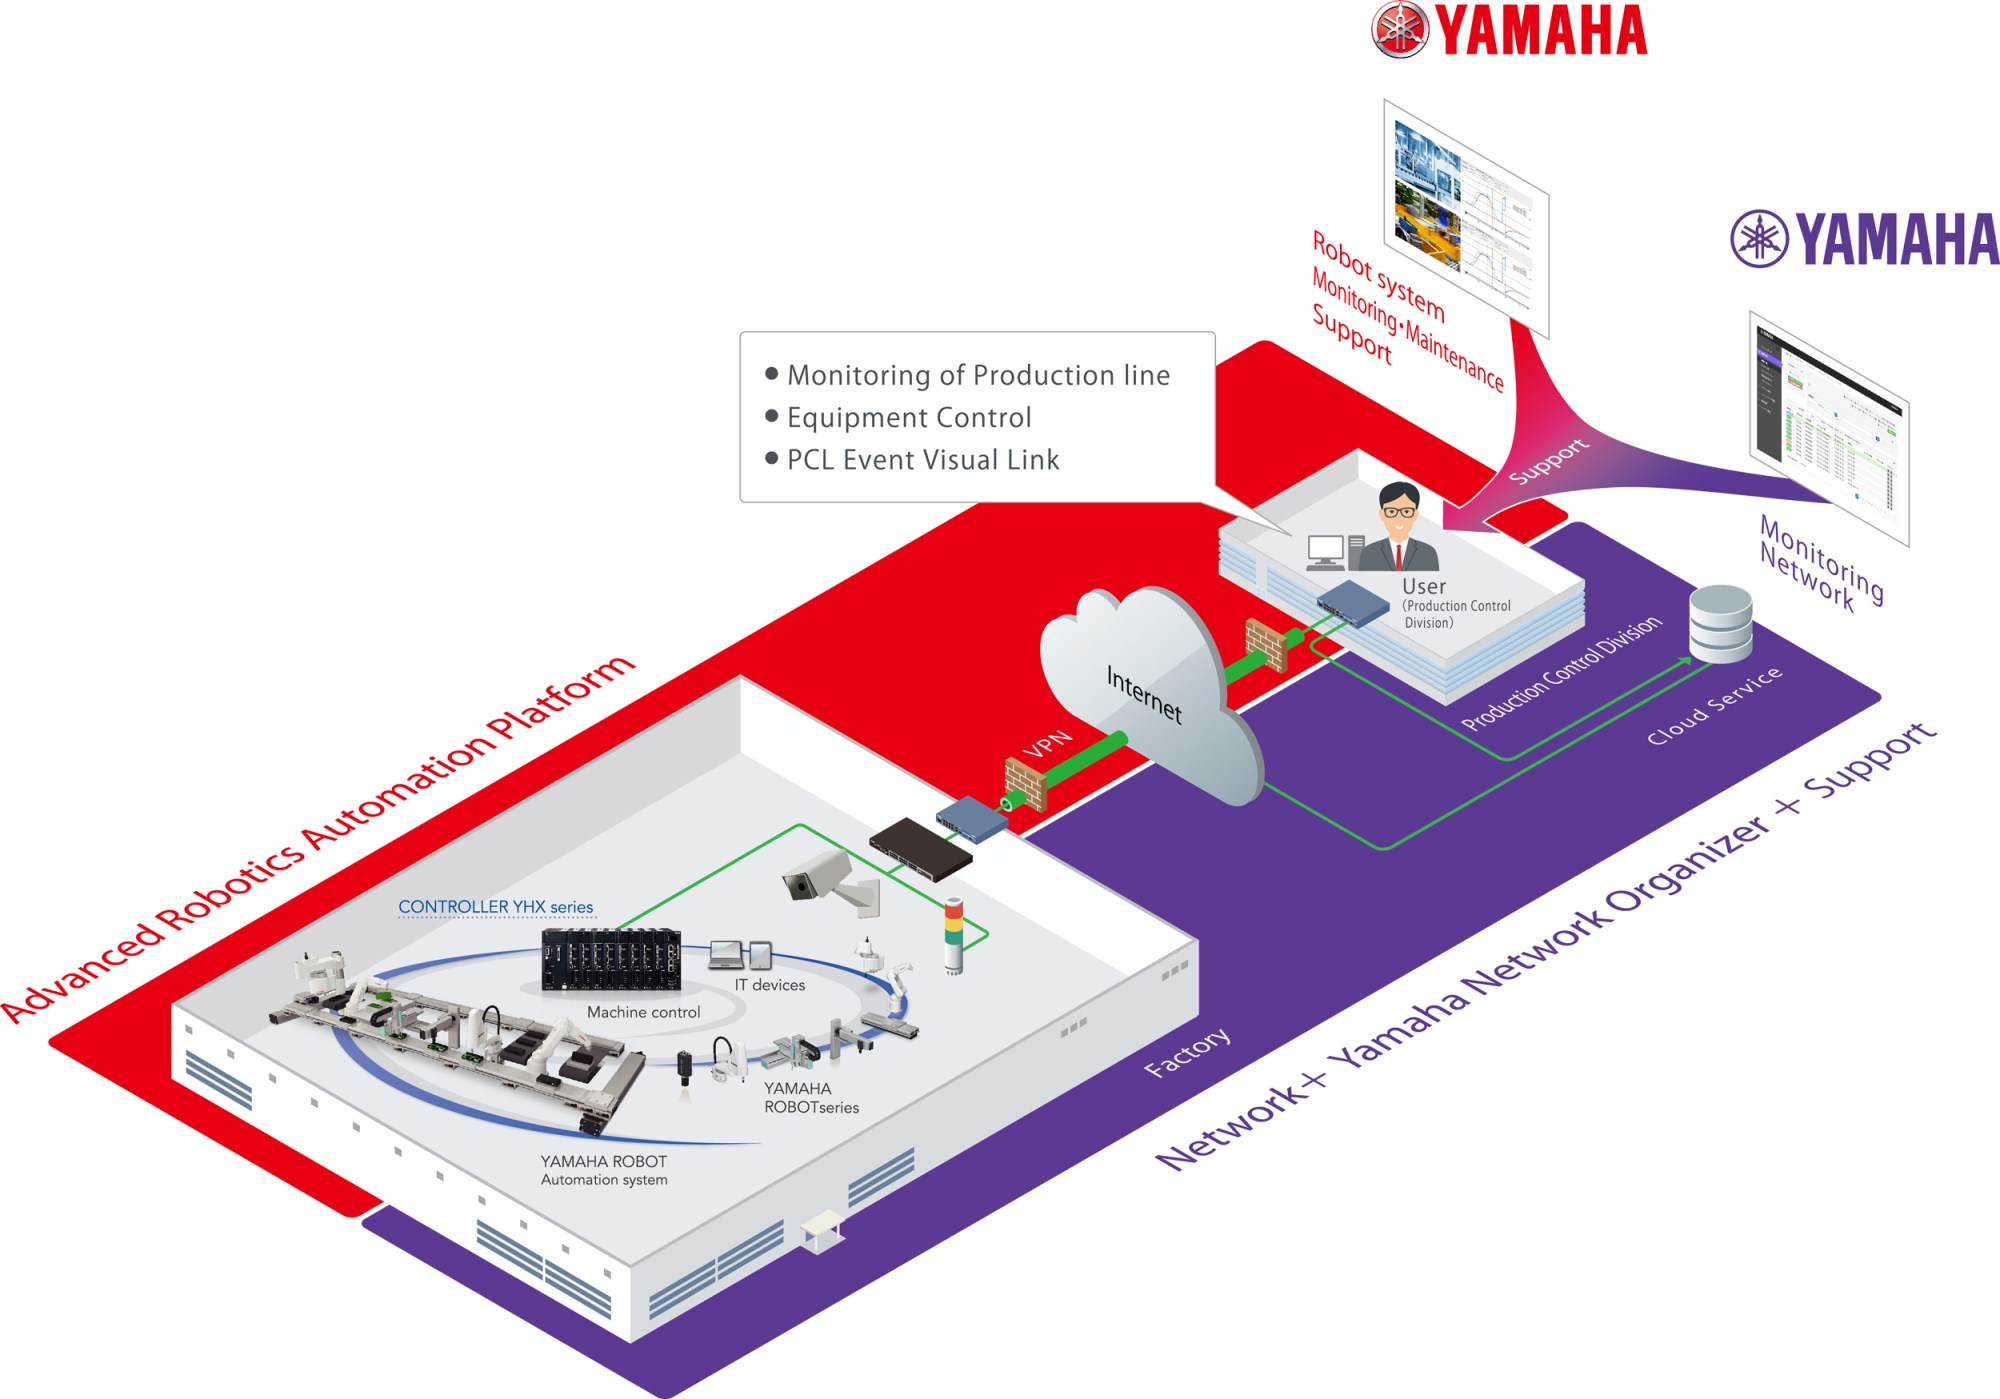 hight resolution of joint development of remote management system packages for factory use iot platforms industrial robots yamaha motor co ltd partnership with yamaha